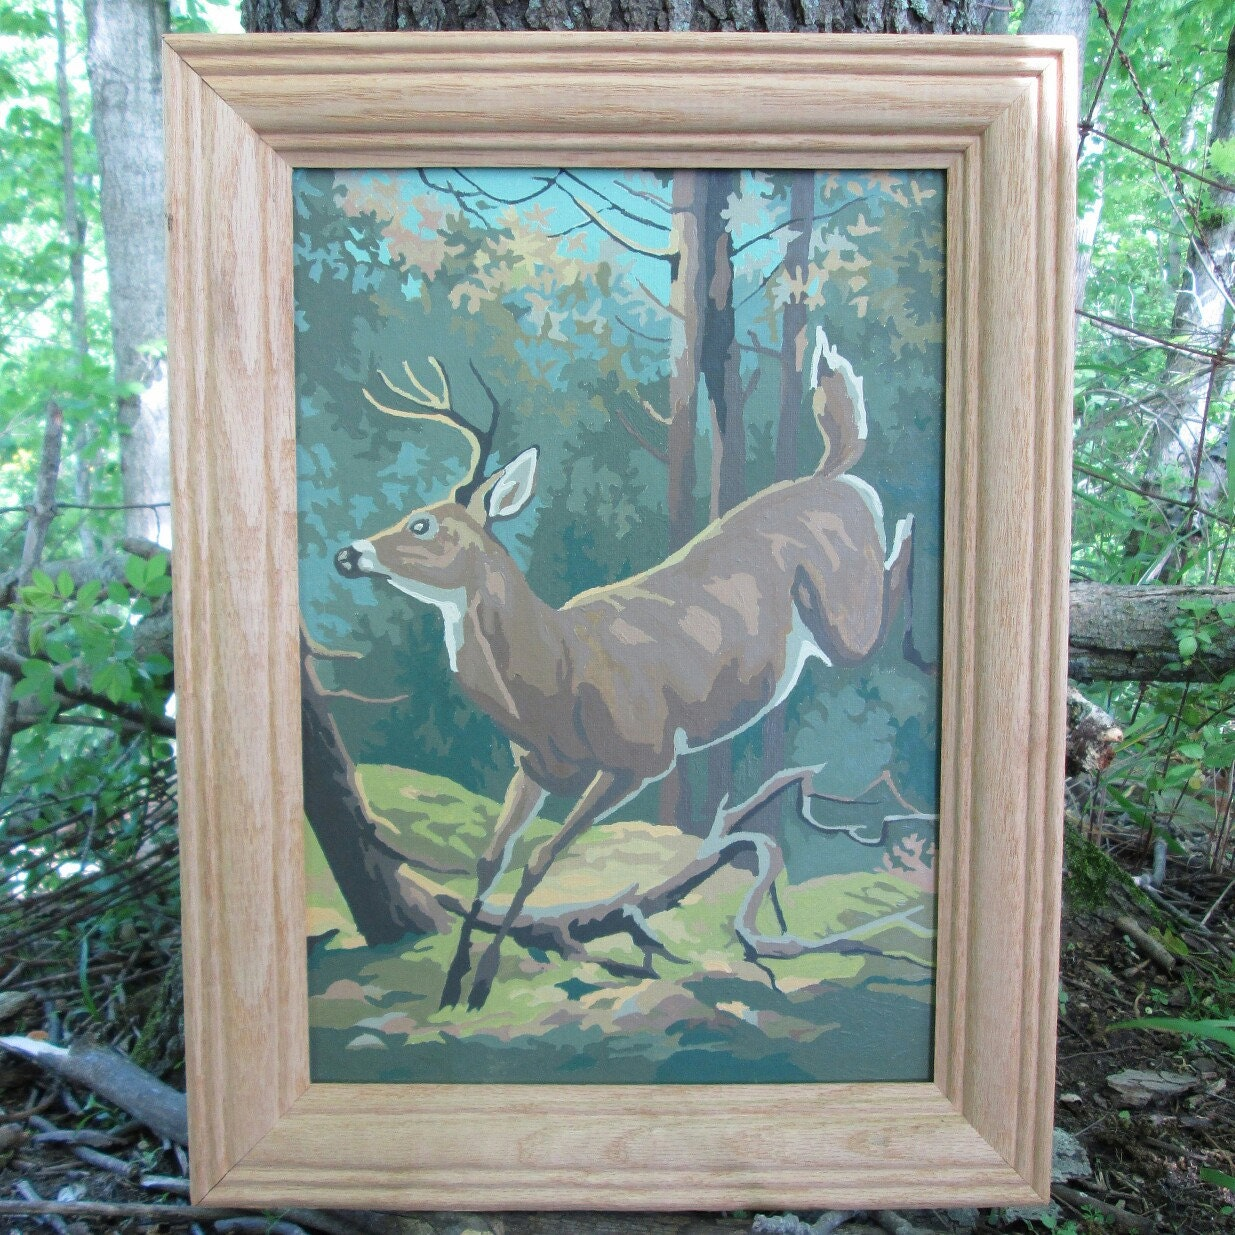 Craft master paint by number kits - Vintage Paint By Number Deer Forest 1969 Craft Master Mid Century Pbn Framed Painting